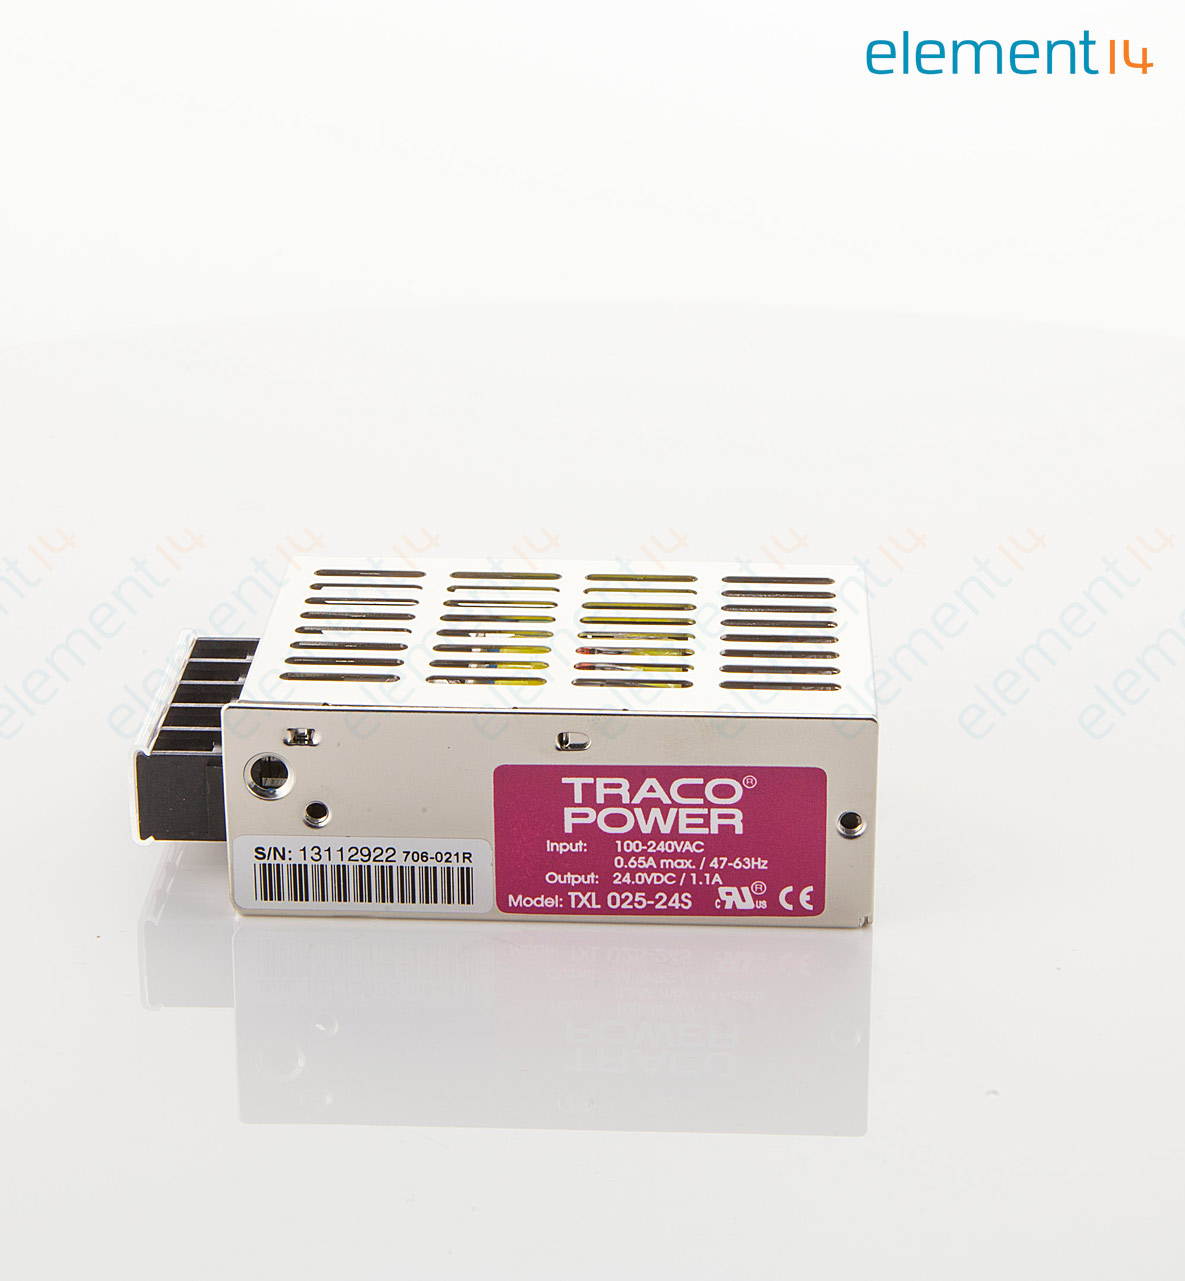 Txl 025 24s Tracopower Ac Dc Enclosed Power Supply Psu Ite 1 24v 65a Single Output Add To Compare